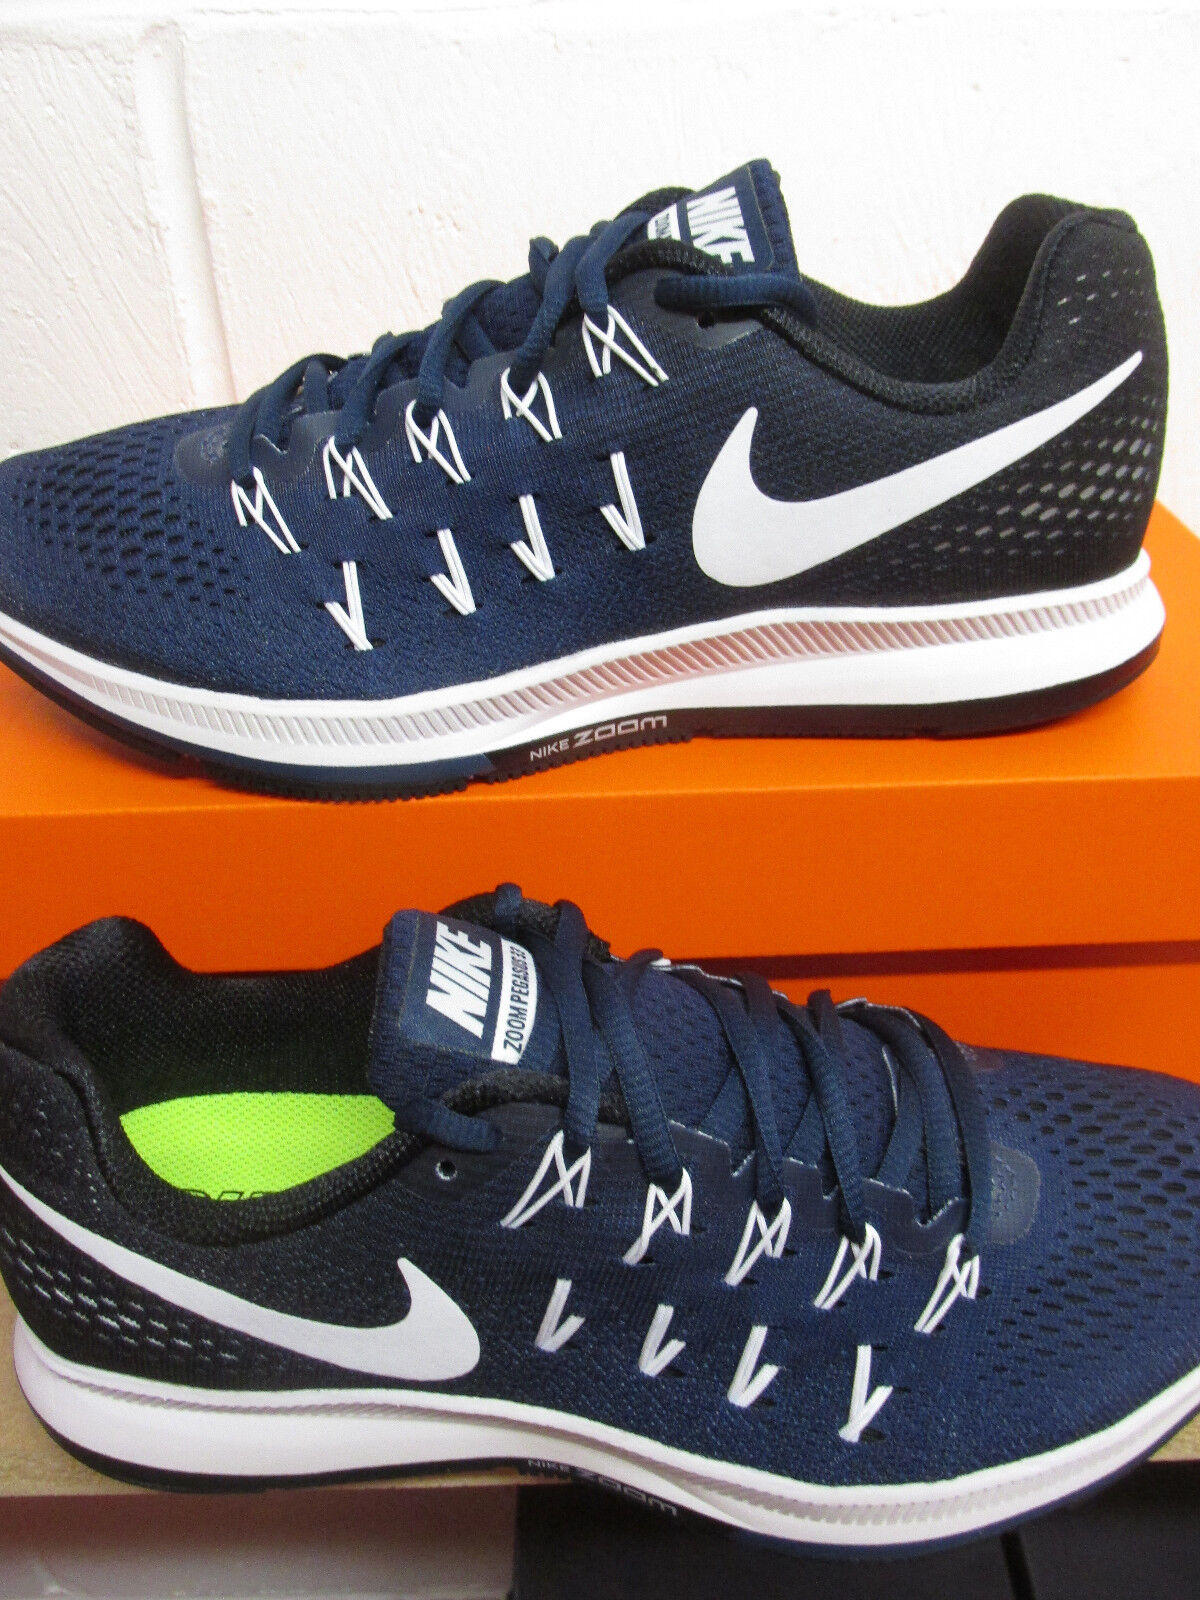 Nike Air Zoom Pegasus 33 TB Mens Running Trainers 843802 401 Sneakers Shoes The most popular shoes for men and women